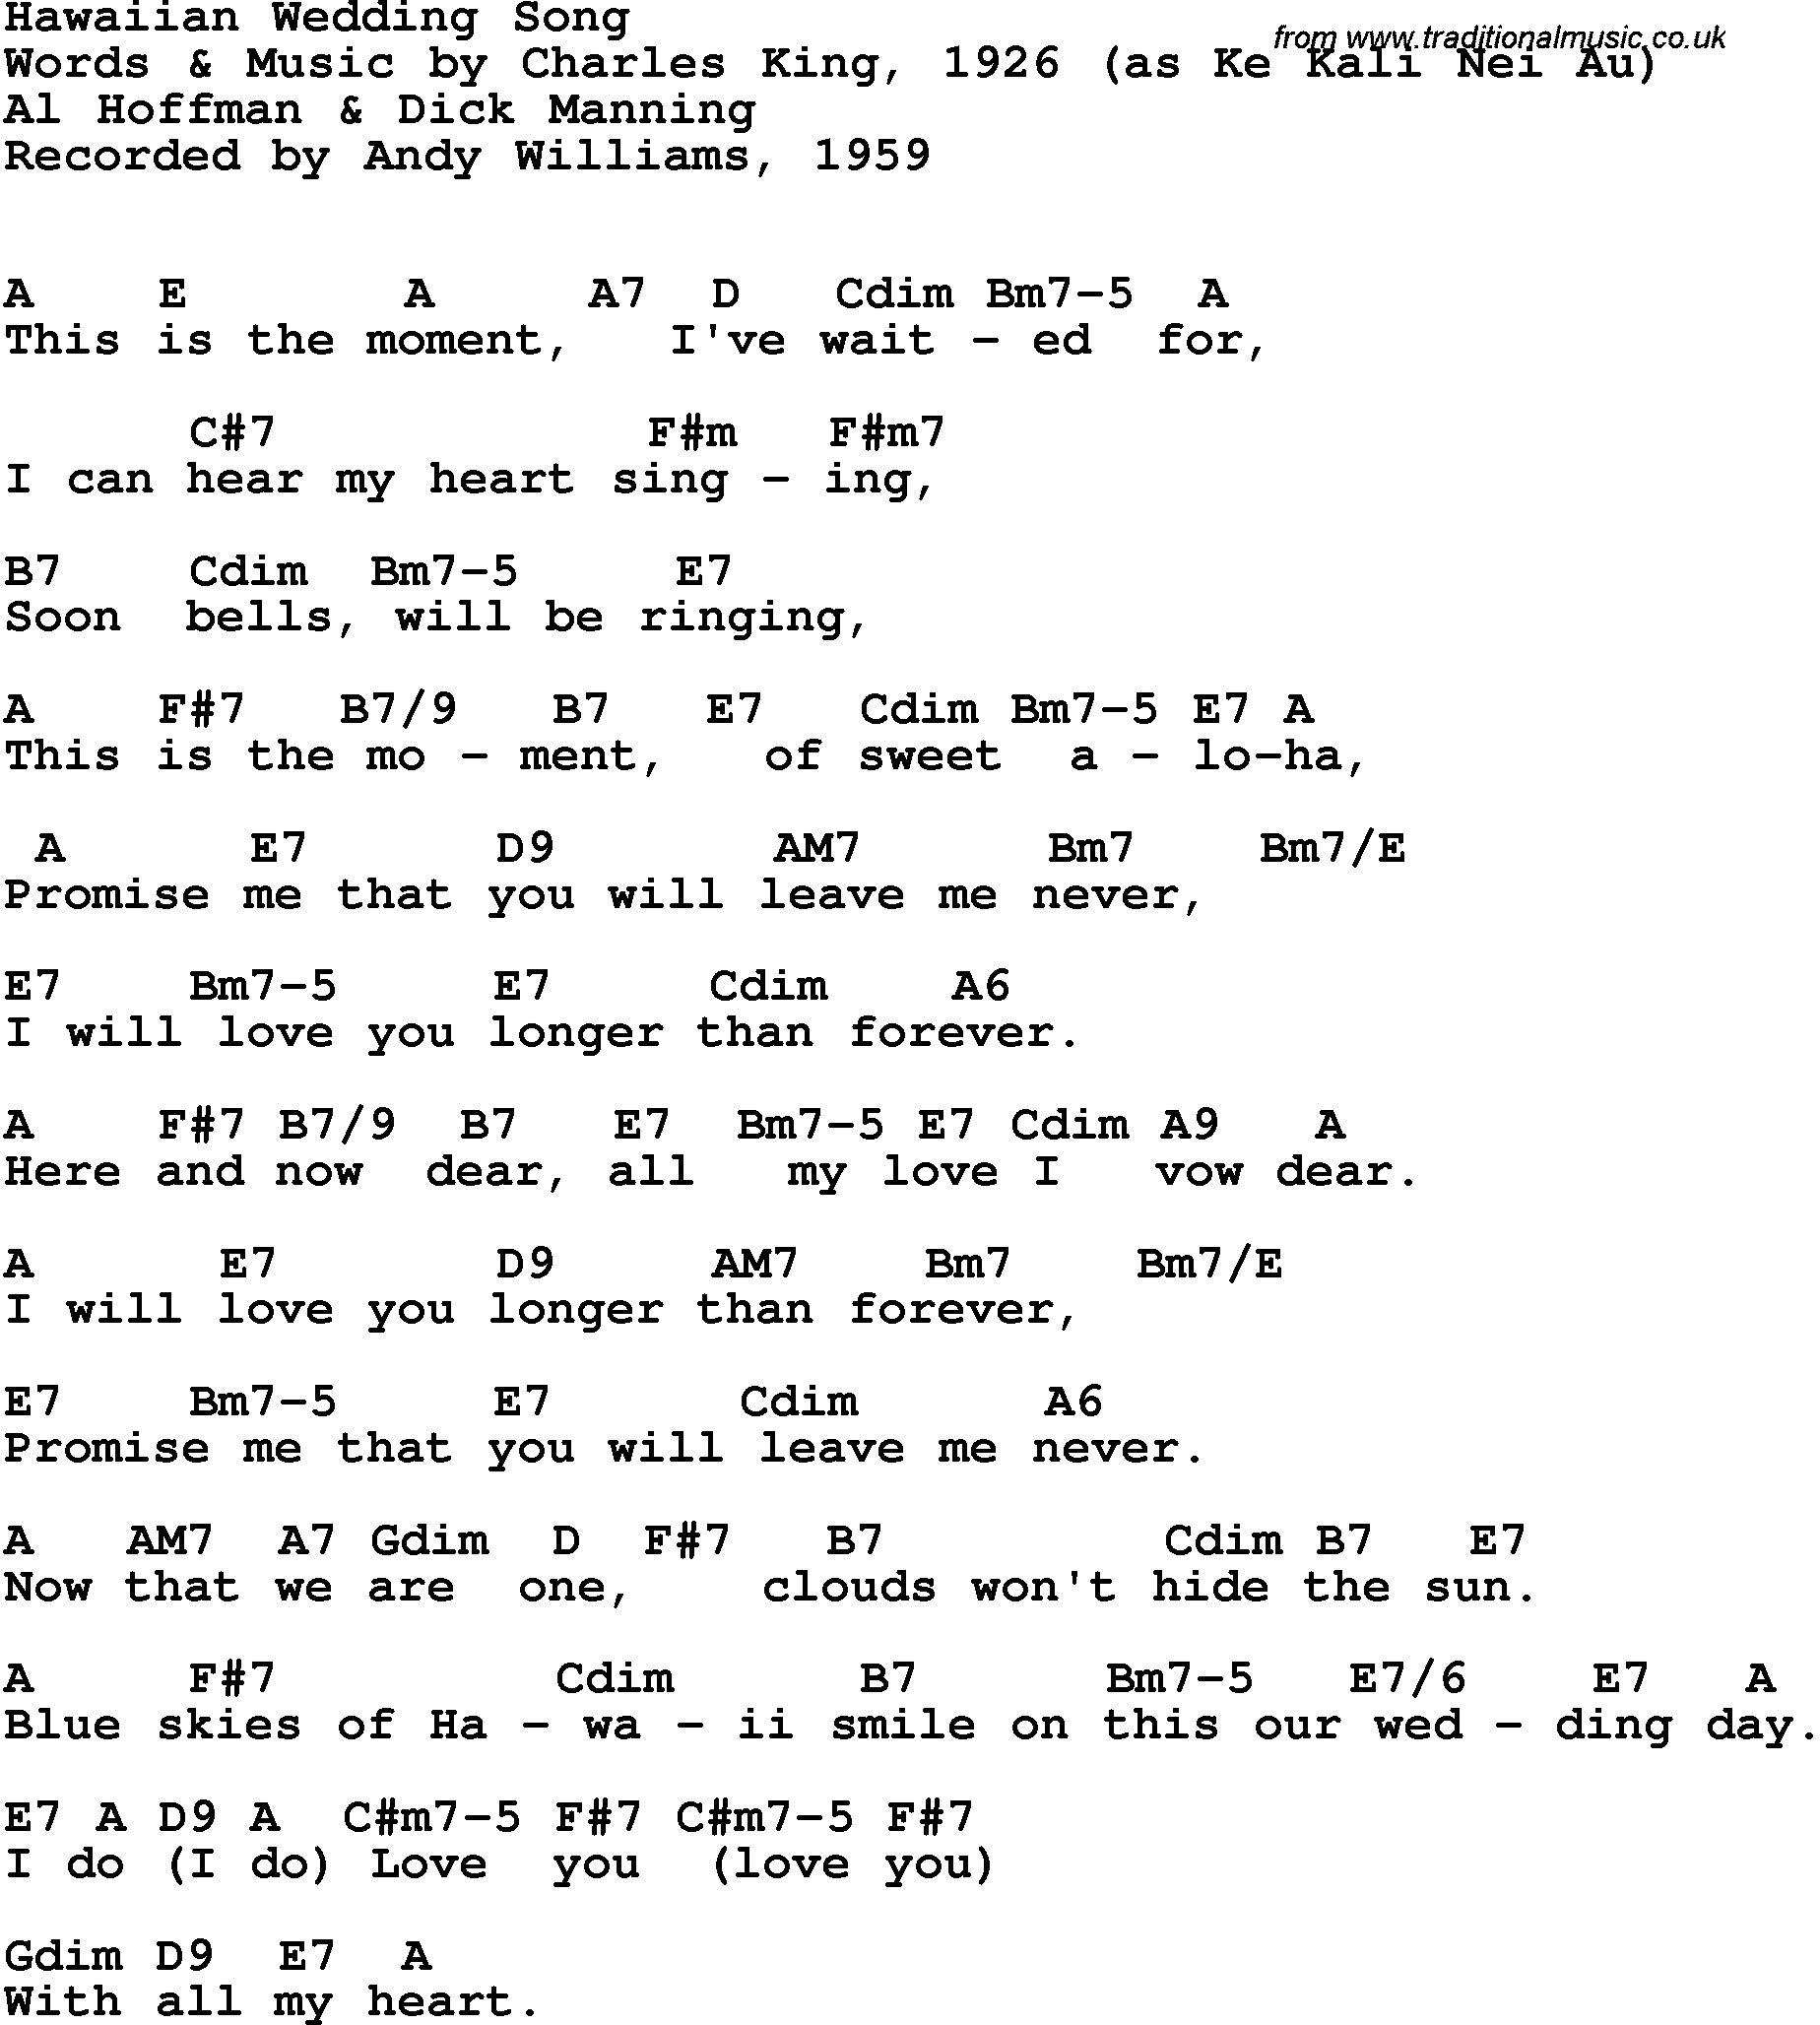 Song Lyrics With Guitar Chords For Hawaiian Wedding Song Andy